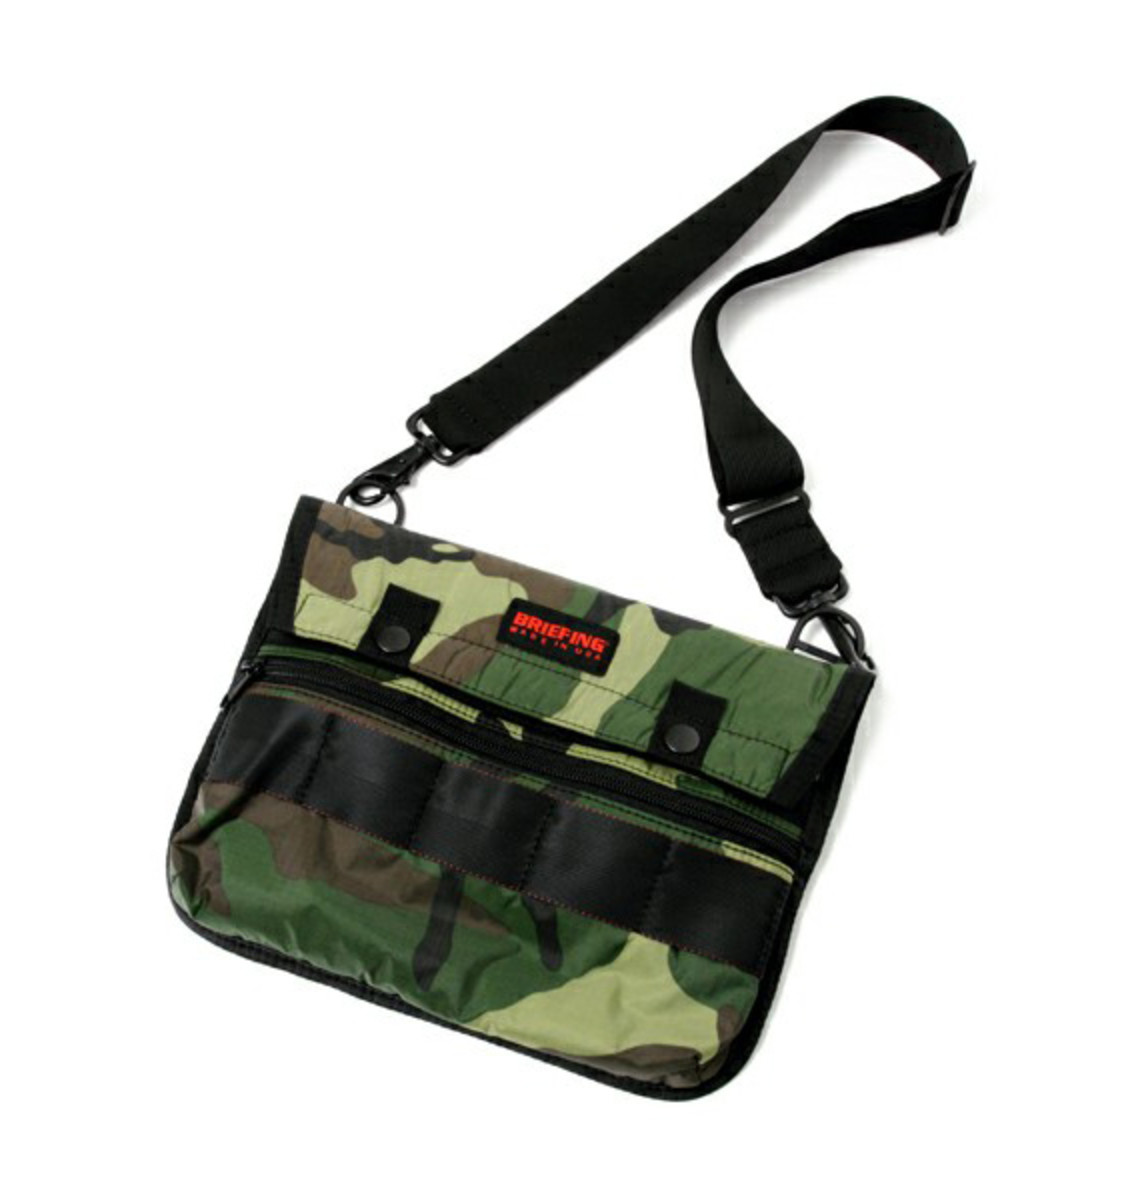 beams-plus-briefing-mil-training-tote-bag-10